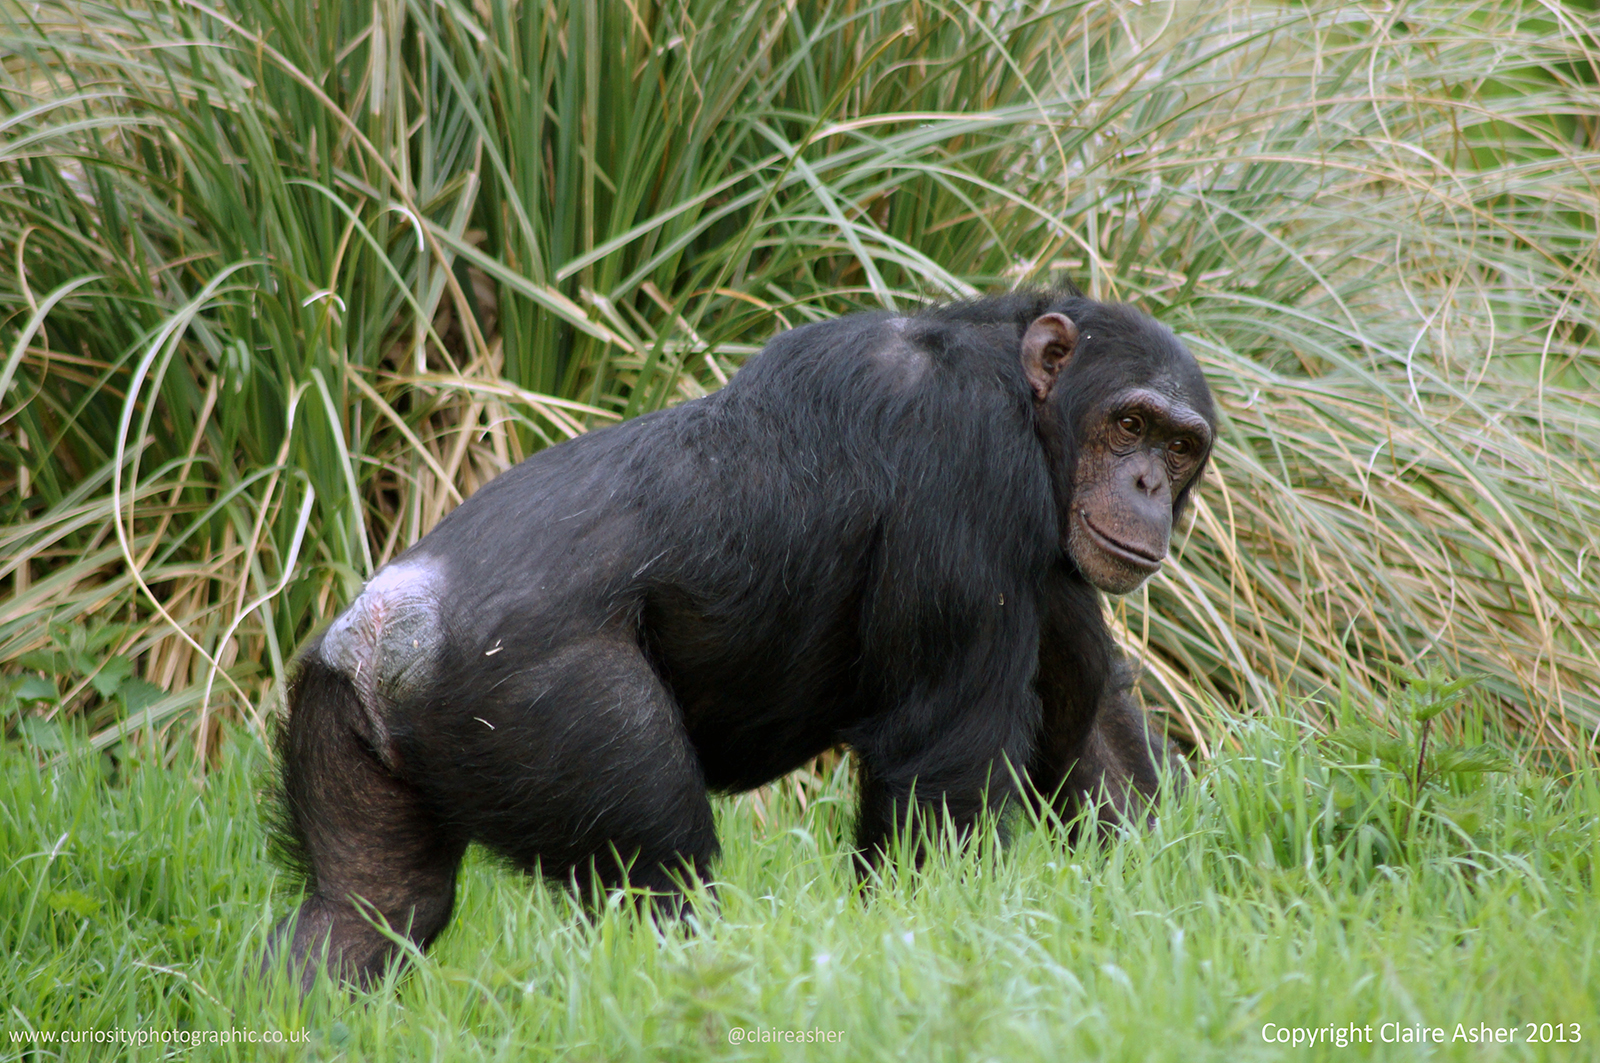 A male Chimpanzee Pan troglodyt) photographed in captivity in the UK in 2013